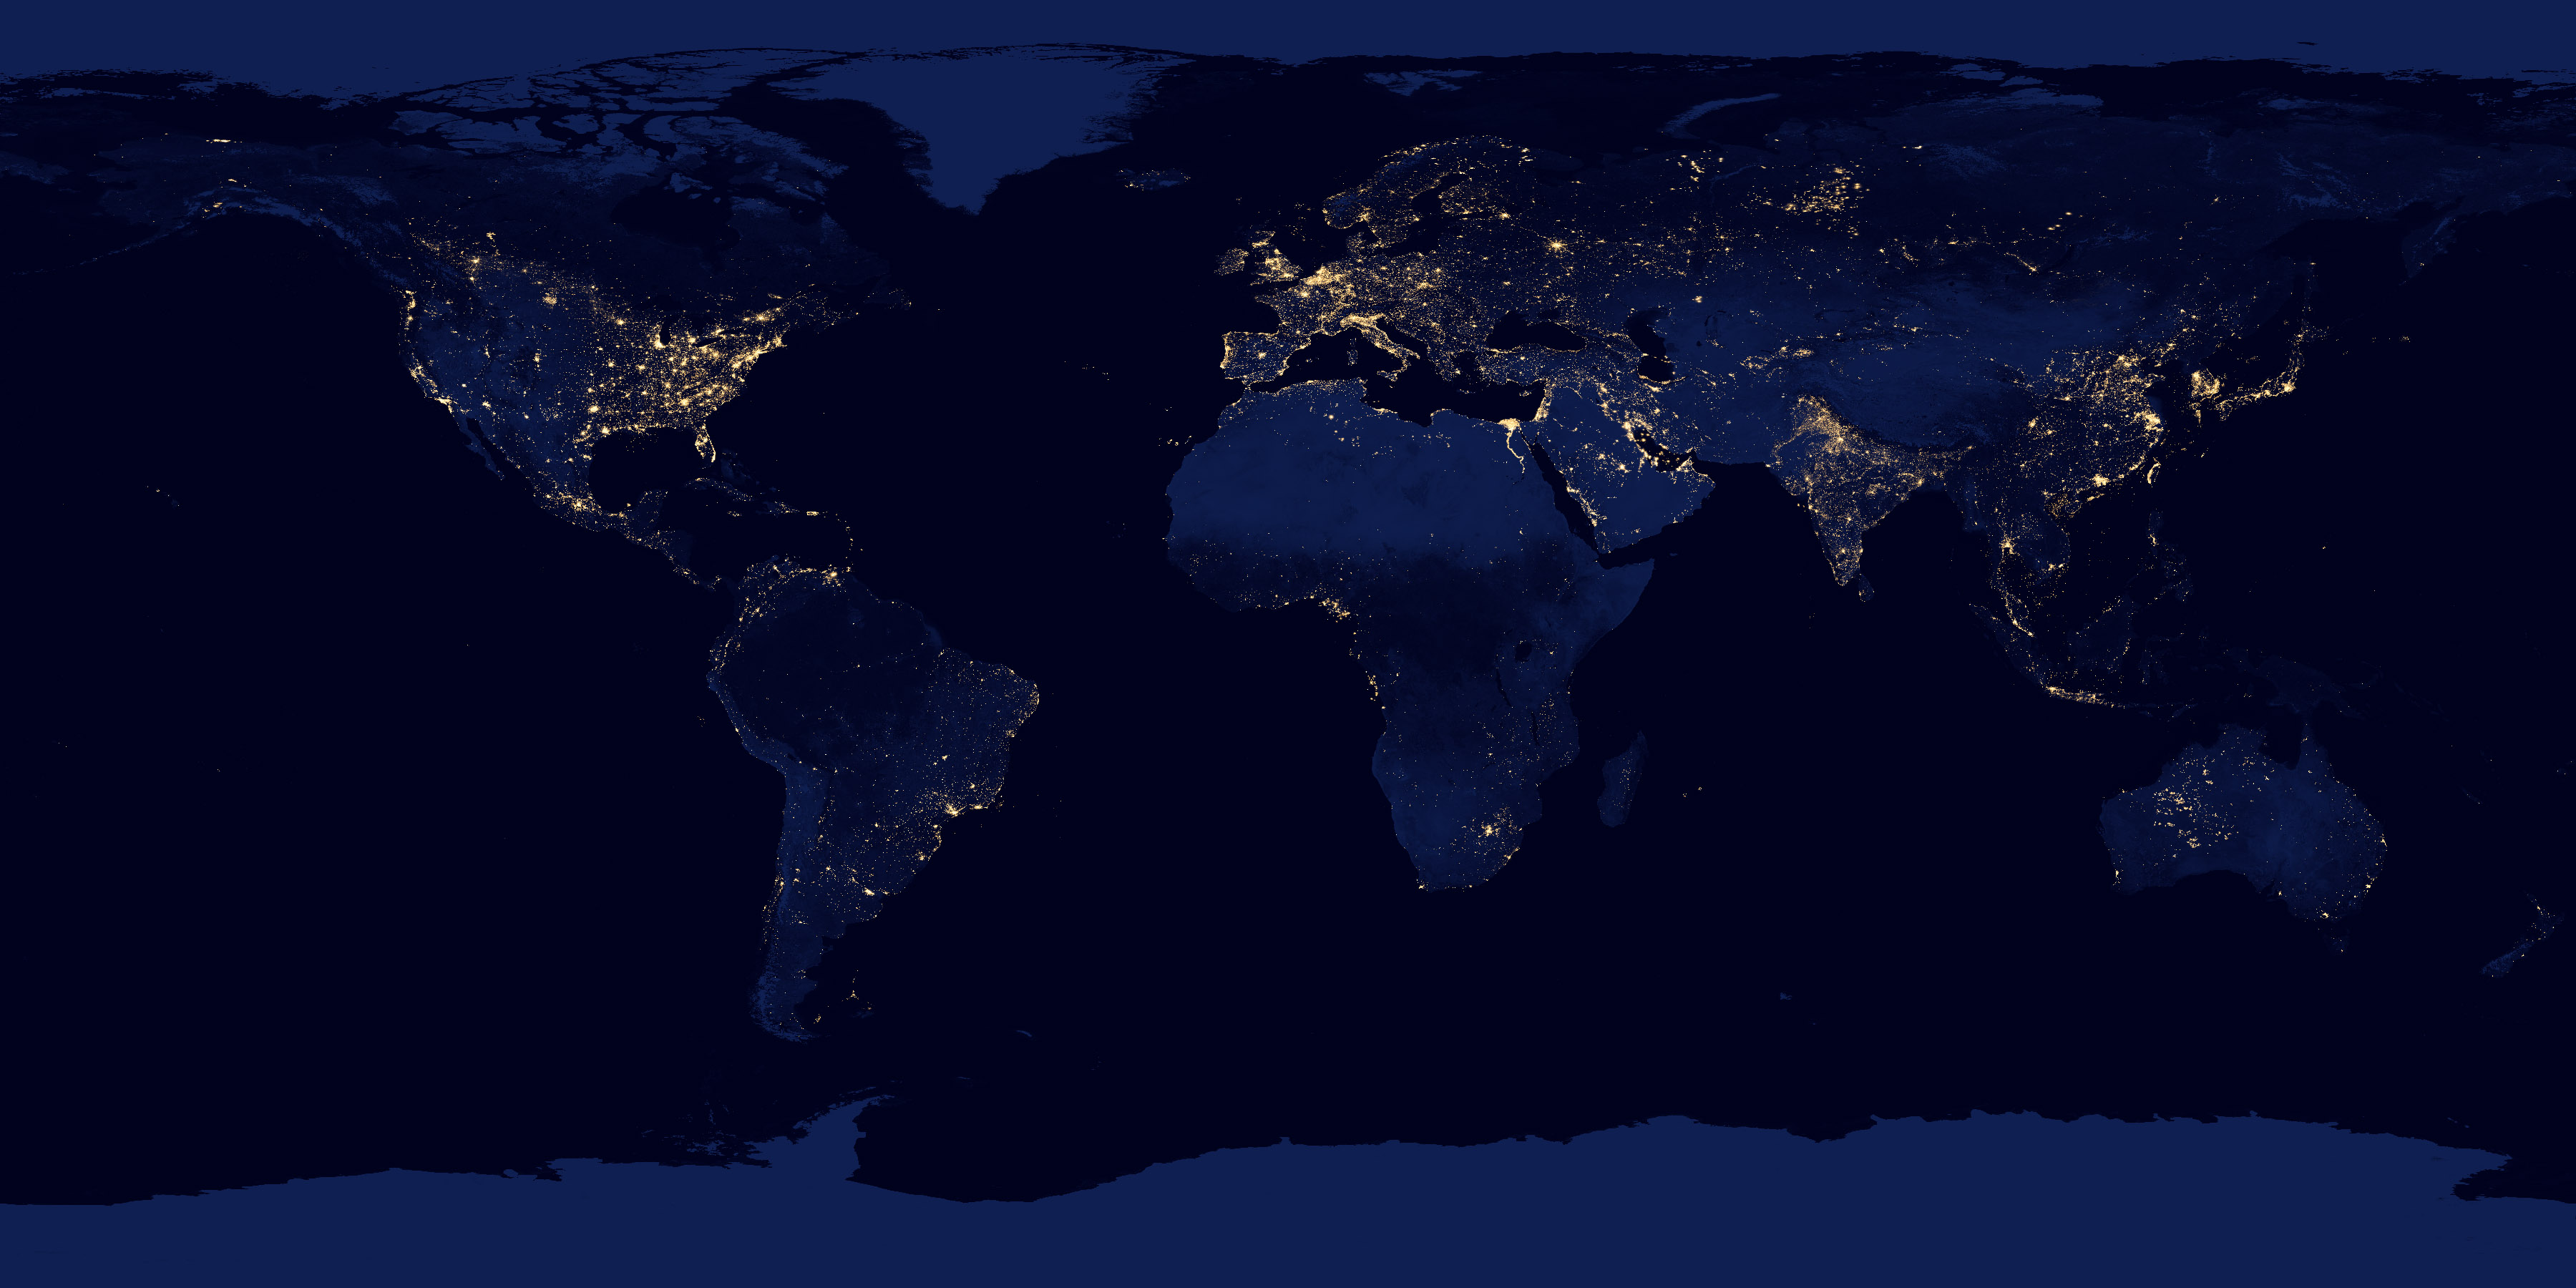 Never Before Seen Satellite View of Earths Cities at Night   CityLab 3600x1800